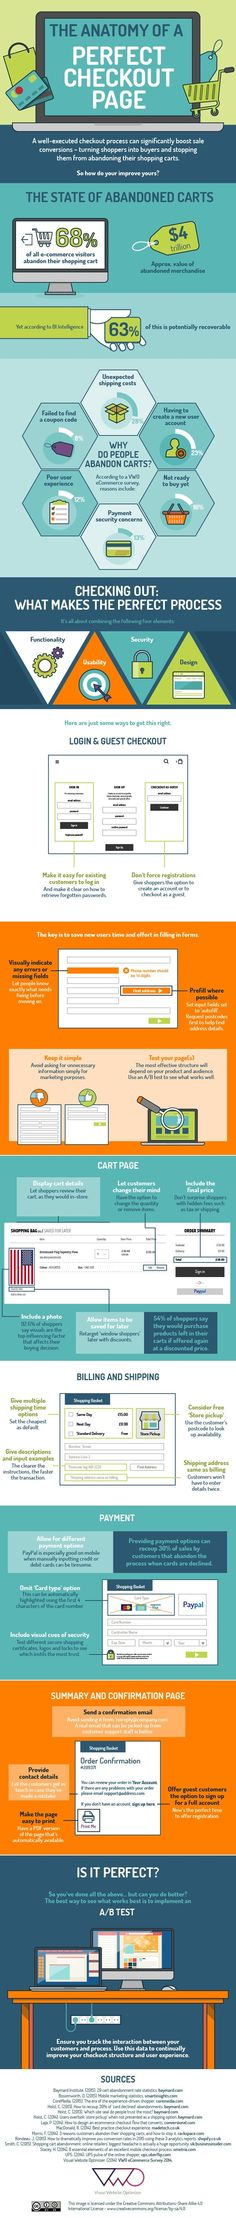 The Anatomy of a Perfect Checkout Page: of all ecommerce visitors abandon their shopping carts - Love a good success story? Learn how I went from zero to 1 million in sales in 5 months with an e-commerce store. Business Marketing, Business Tips, Internet Marketing, Online Marketing, Online Business, Digital Marketing, Web Business, Marketing Technology, Content Marketing